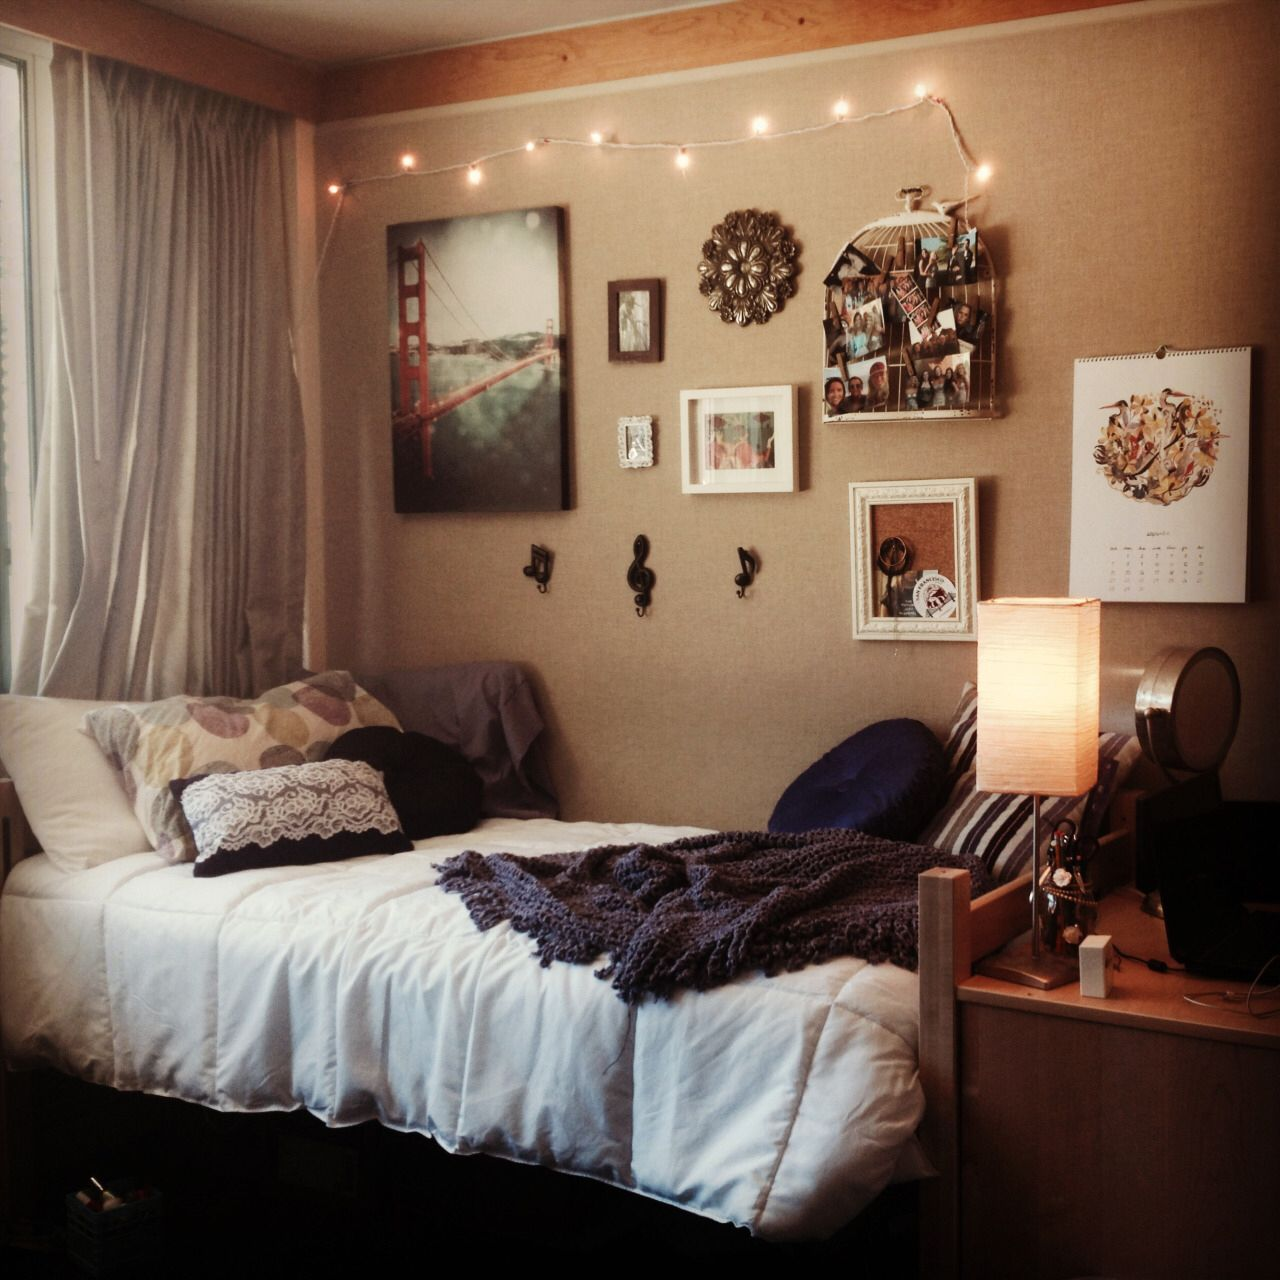 room decor old fabe dorm the road tutorial wall college diy steps headboard on dacor easy post